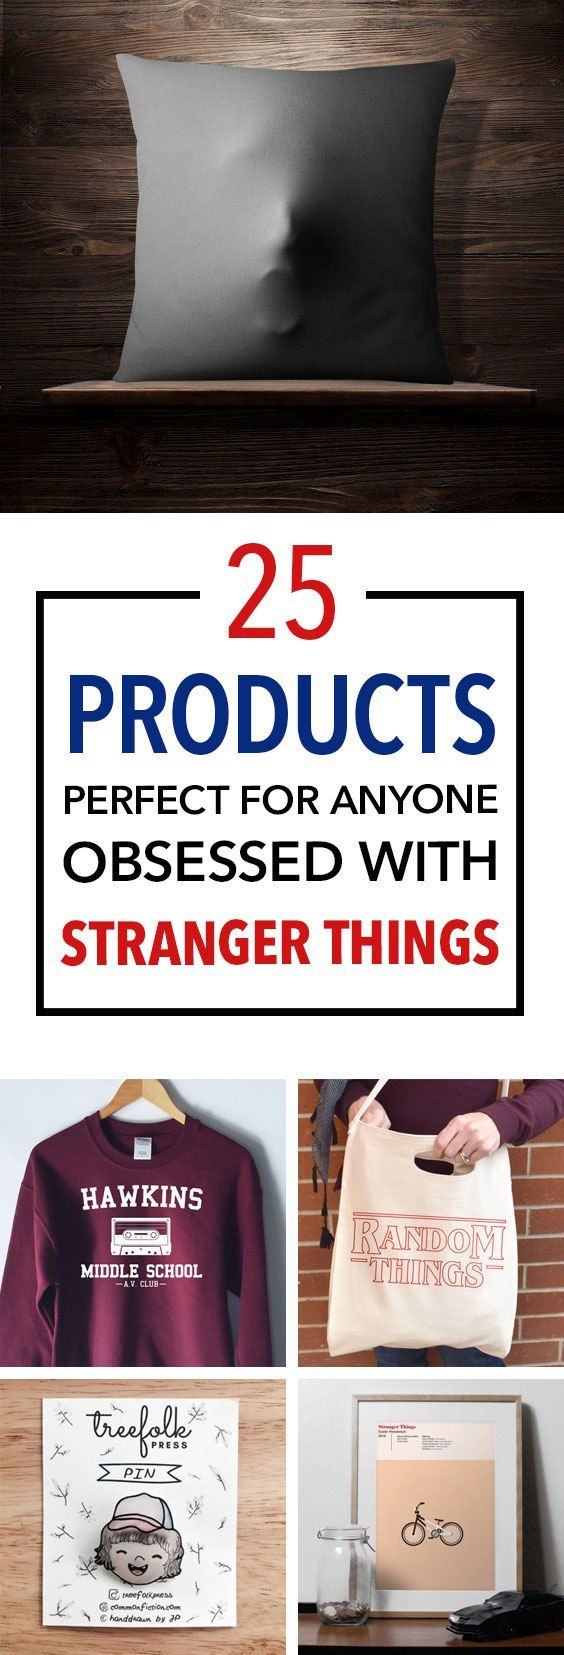 25 Products Perfect For Anyone Obsessed With Stranger Things – SOCIETY19